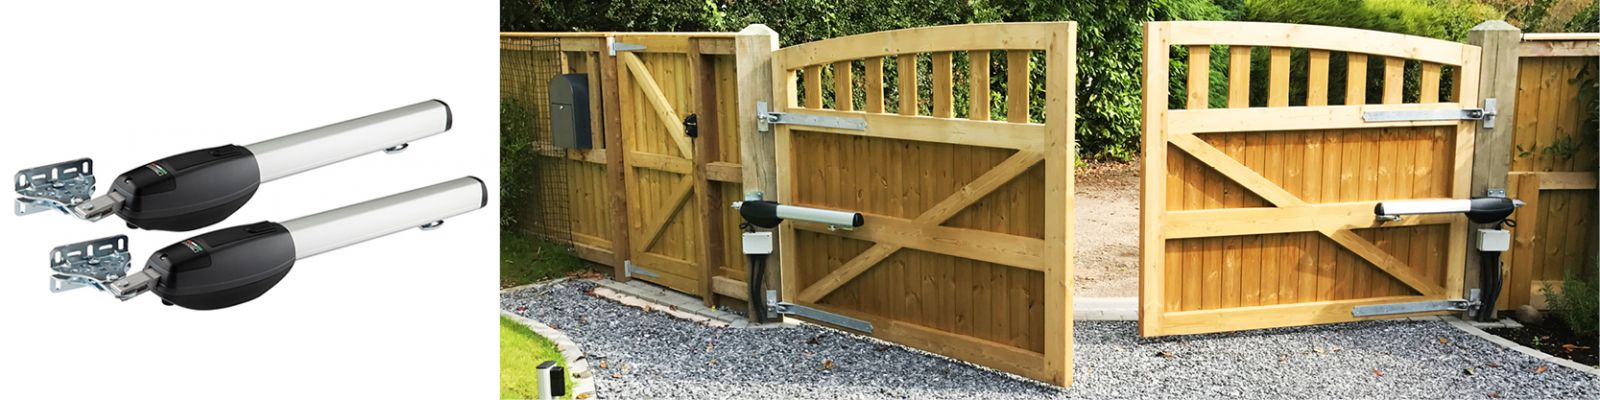 Electric Gates Automation Systems And Electric Gate Kits